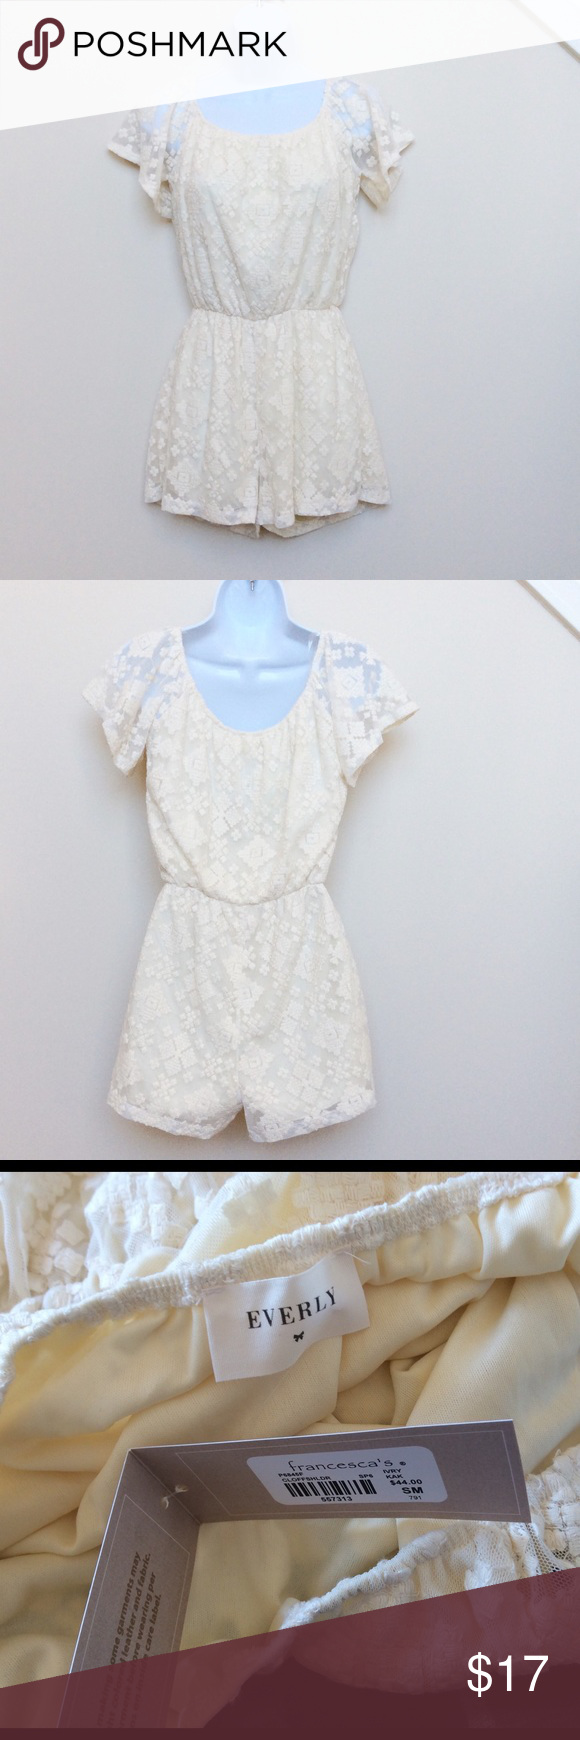 Everly Cream Colored Lace Romper, NWT NWT, Size S Cream Colored lace romper from Everly, sold at Francesca's.  Total length from shoulder is 29 inches. Everly Pants Jumpsuits & Rompers